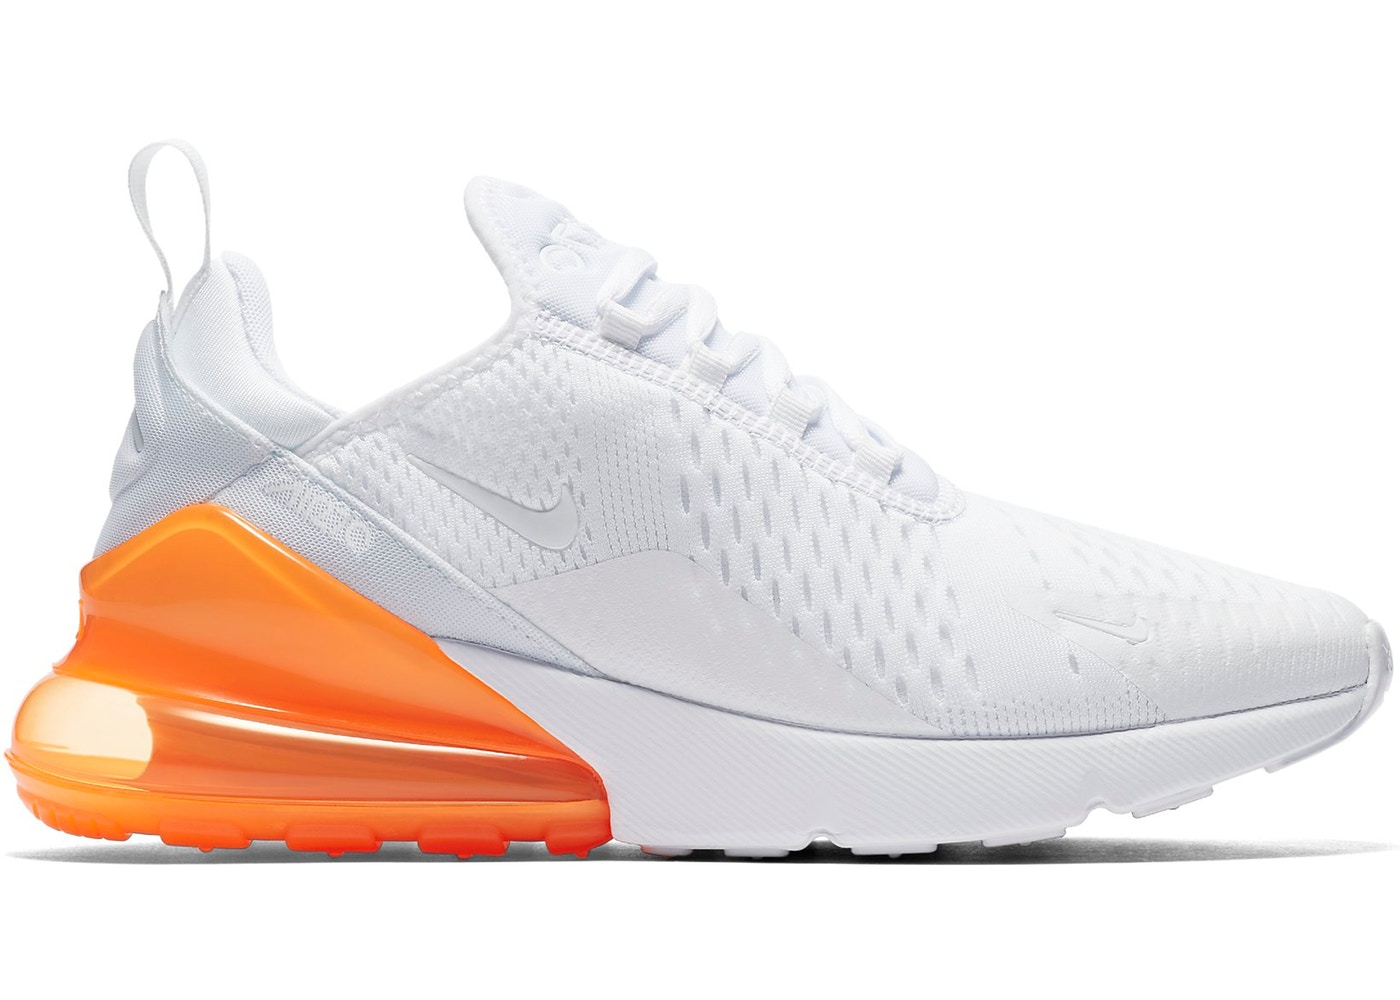 online retailer 52e73 8f179 Air Max 270 White Pack (Total Orange)